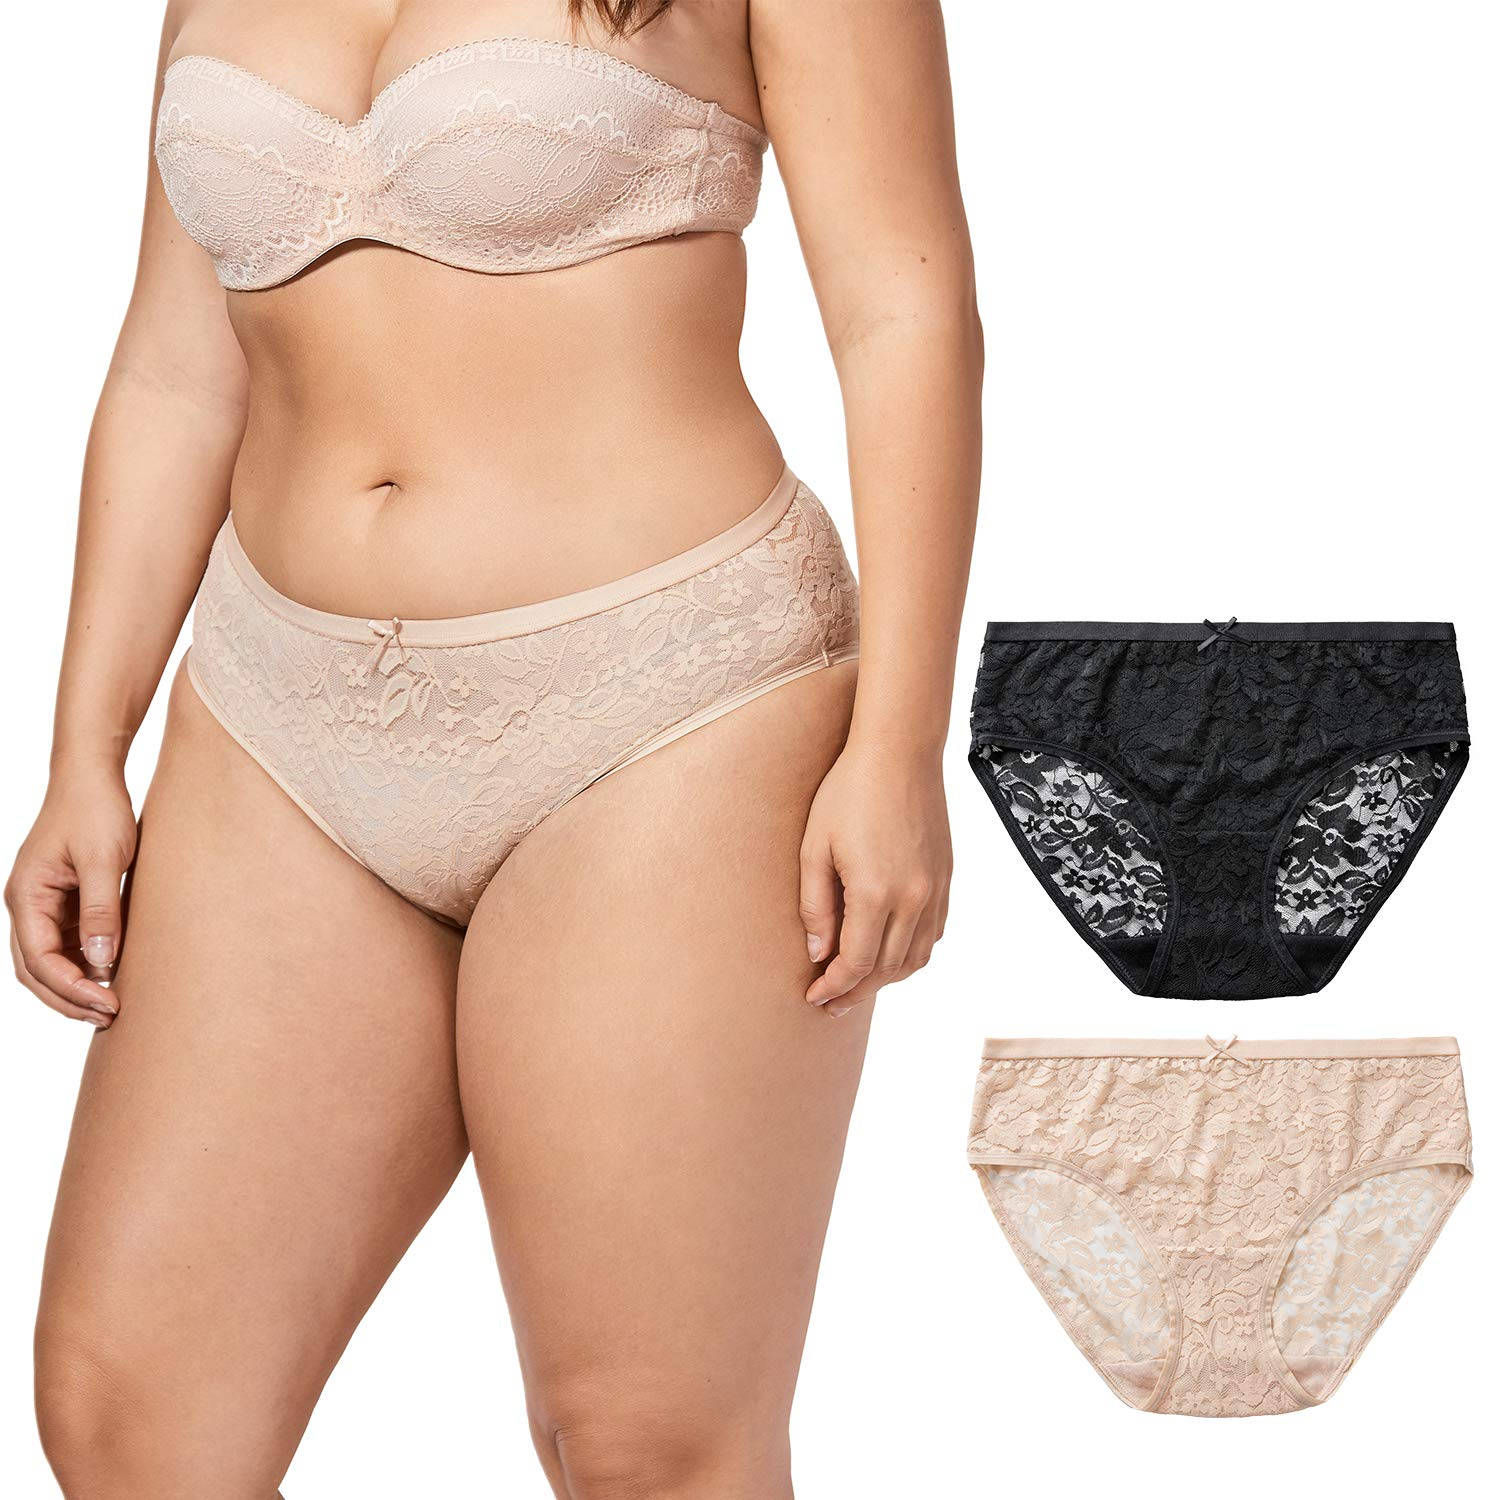 DELIMIRA Women's Underwear Lace Hipster Plus Size Sexy Panties for Women, 2 Pack